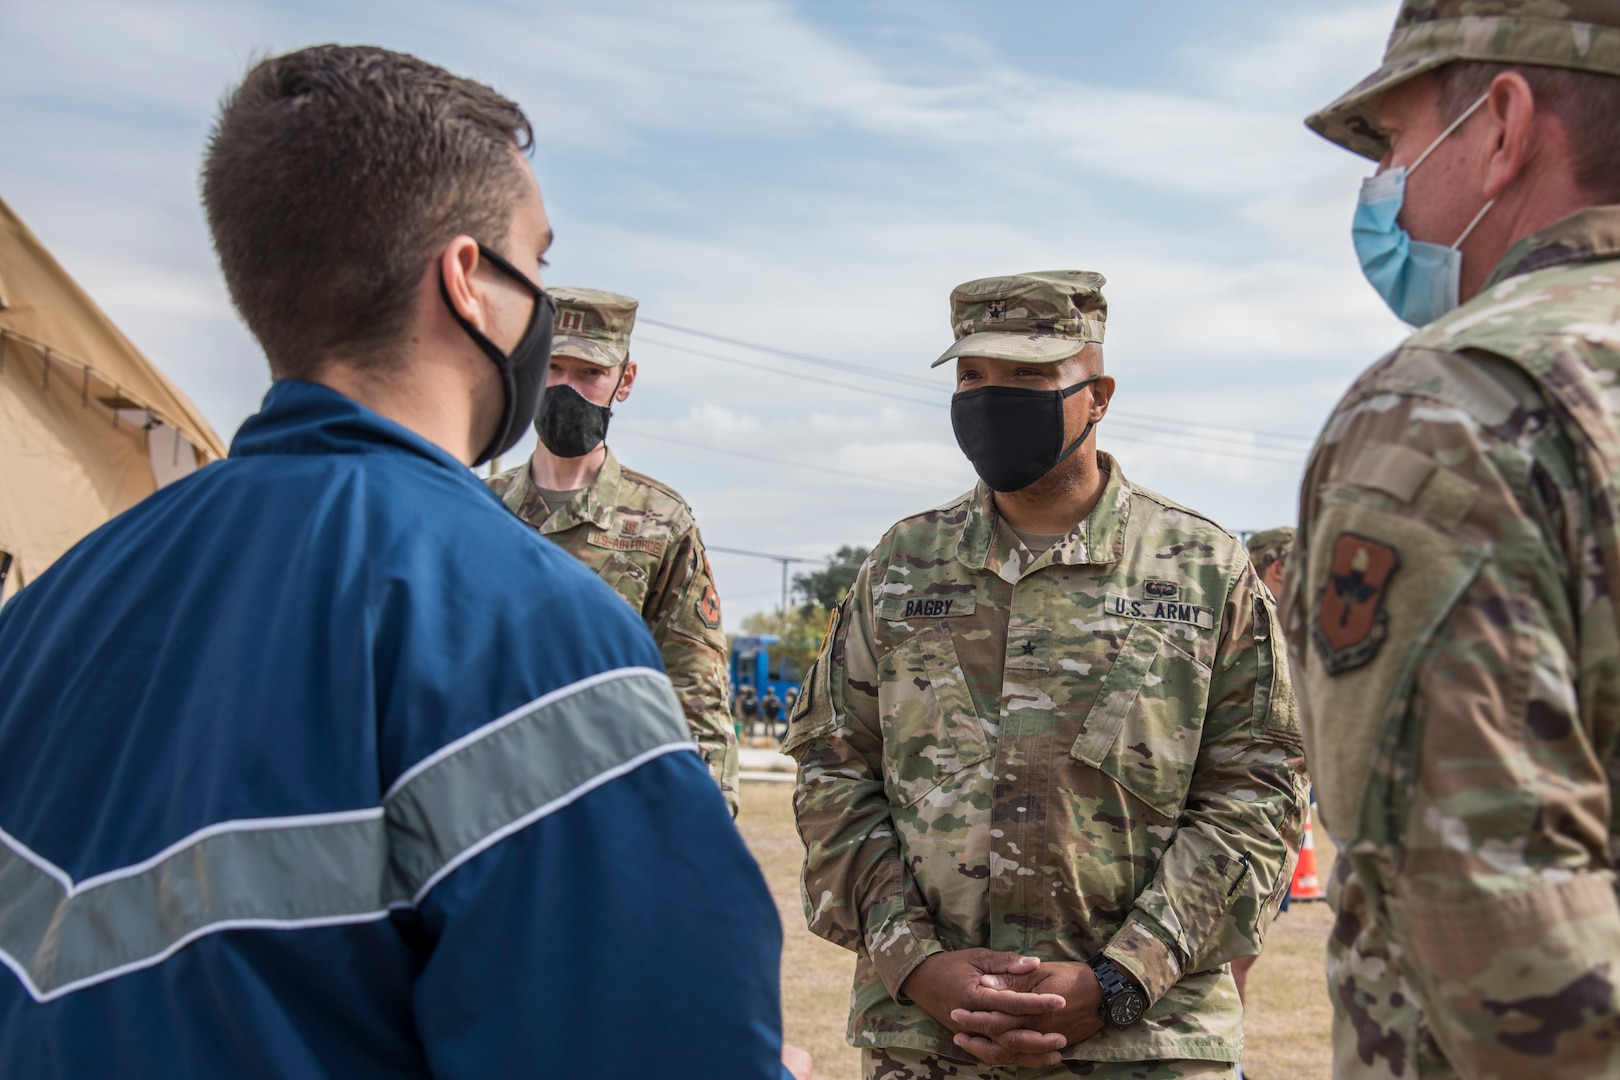 U.S. Army Brig. Gen. Shan K. Bagby, Brooke Army Medical Center commanding general, listens to a brief about the COVID-19 tent operations at the Reid Health Services Center, Nov. 23, 2020, on Joint Base San Antonio-Lackland, Texas.